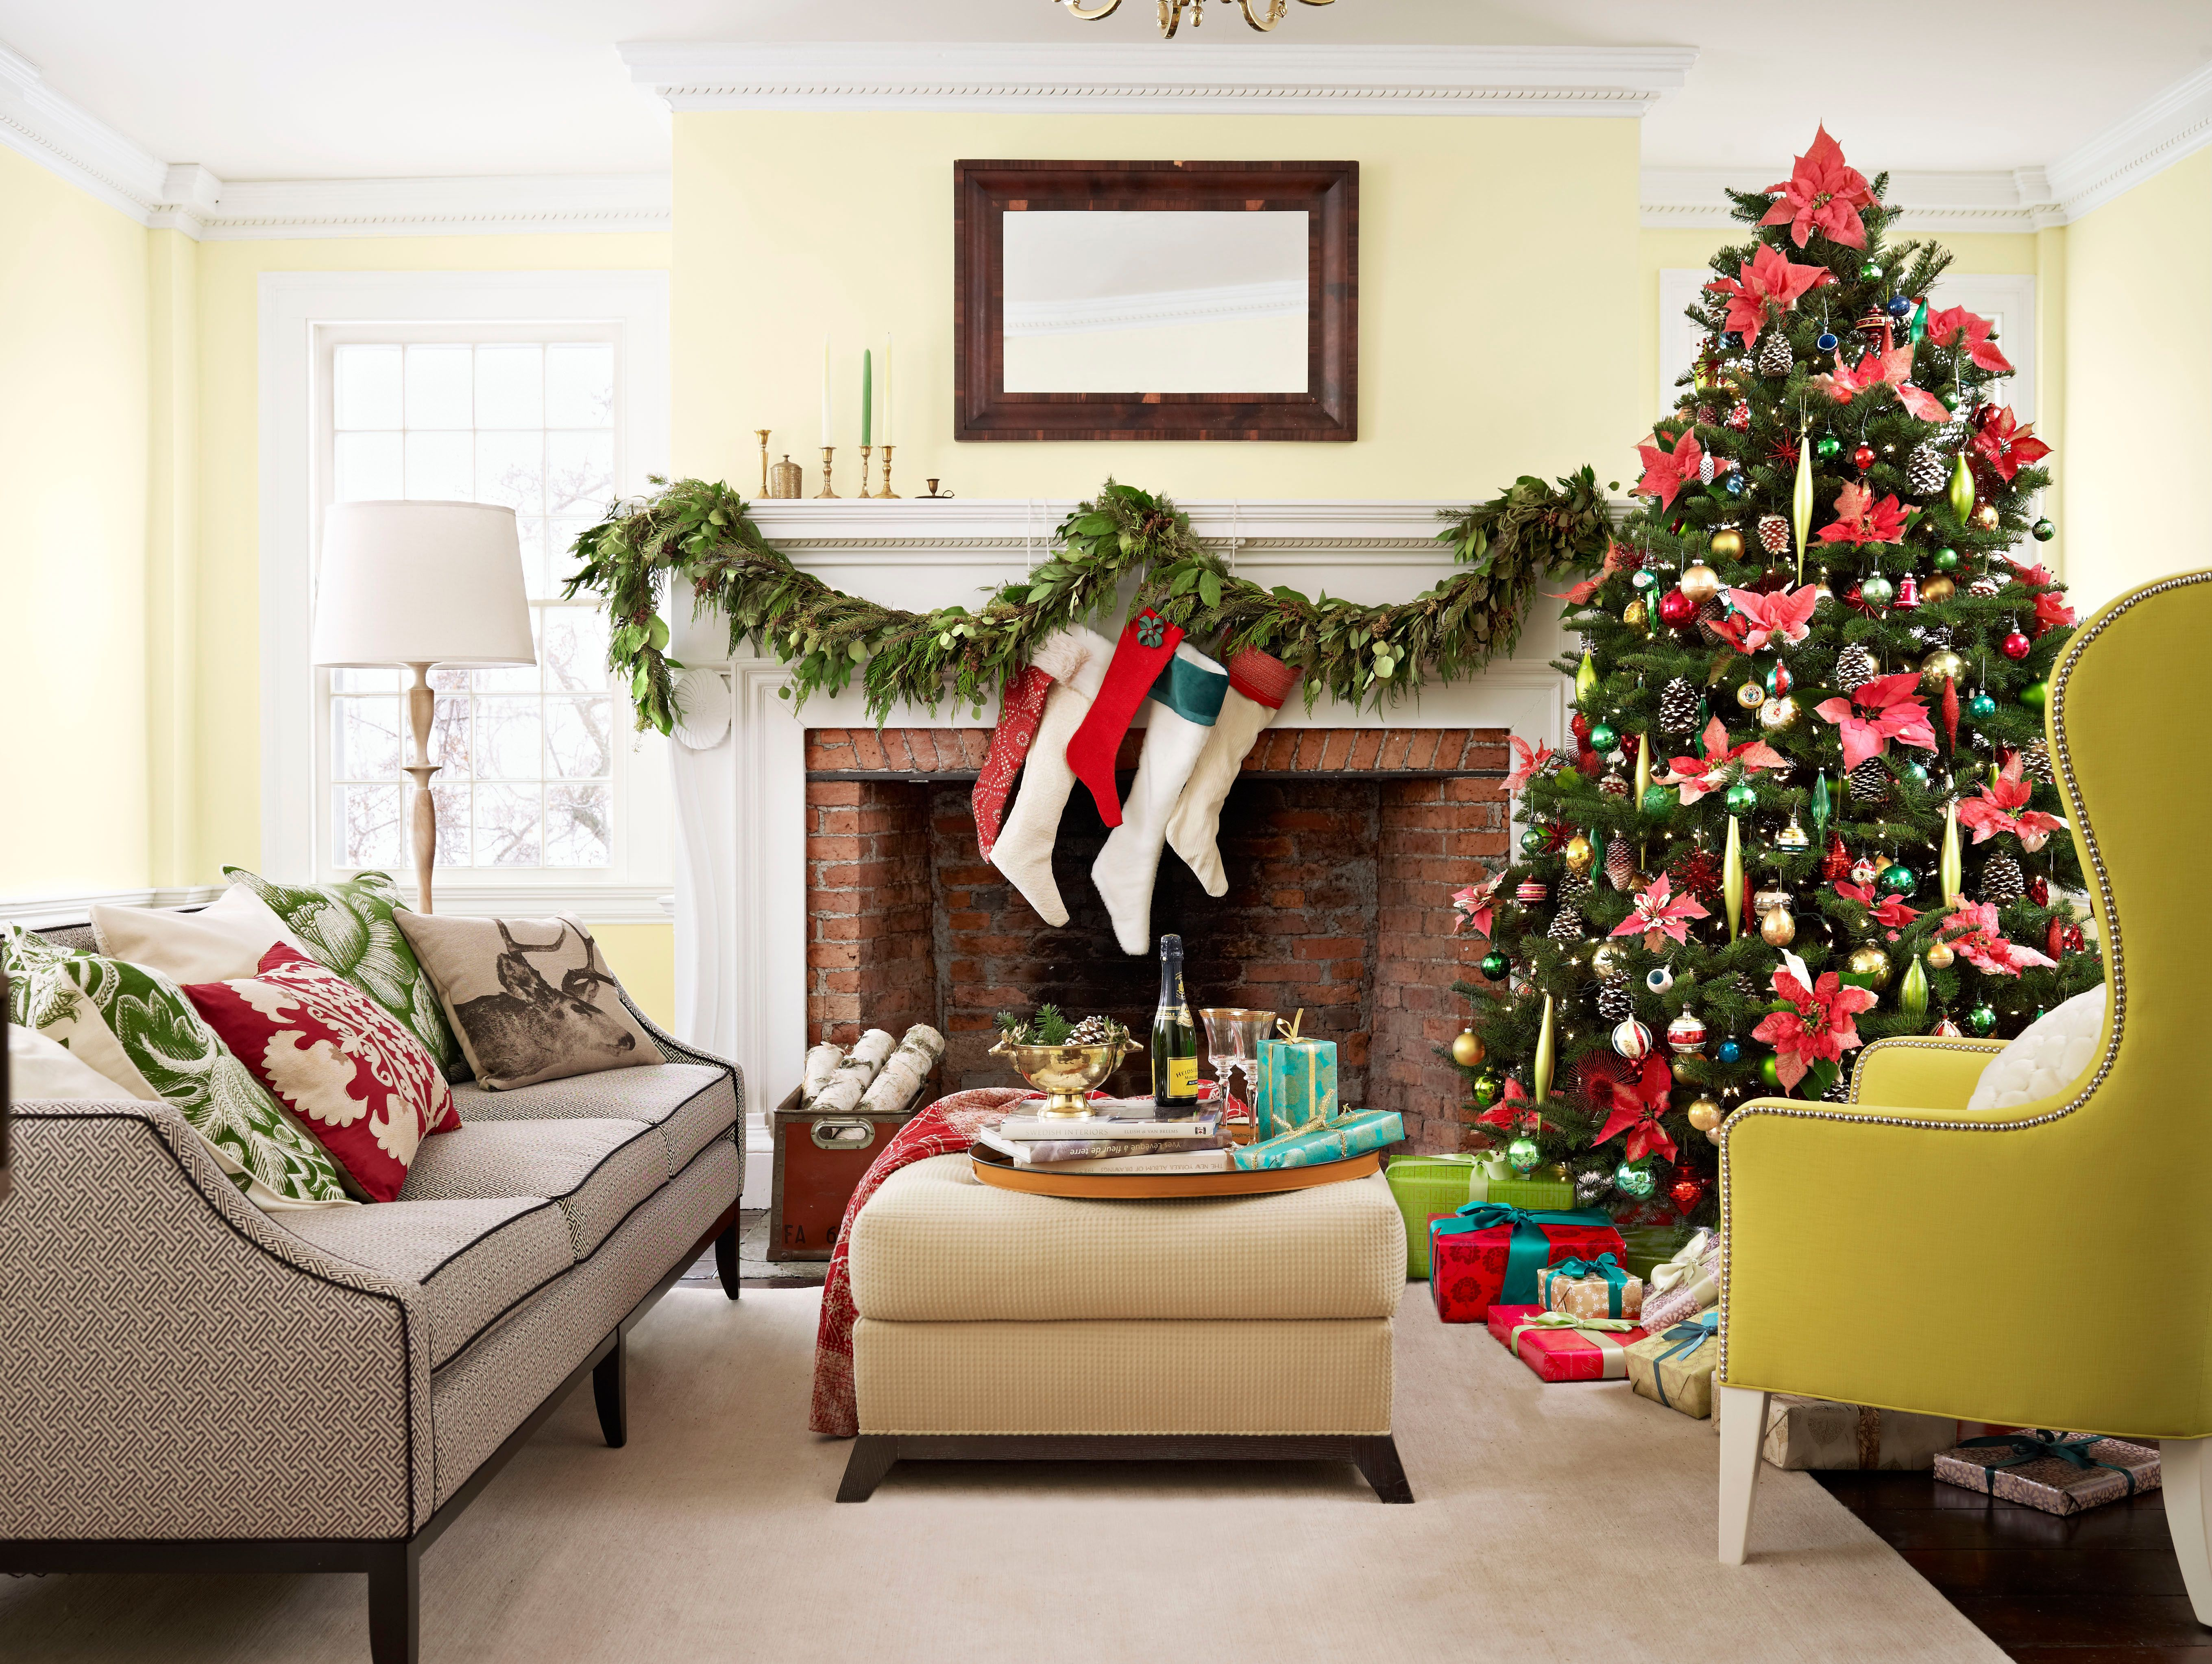 christmas decorating ideas for small living rooms room wall art decor 110 country decorations holiday 2018